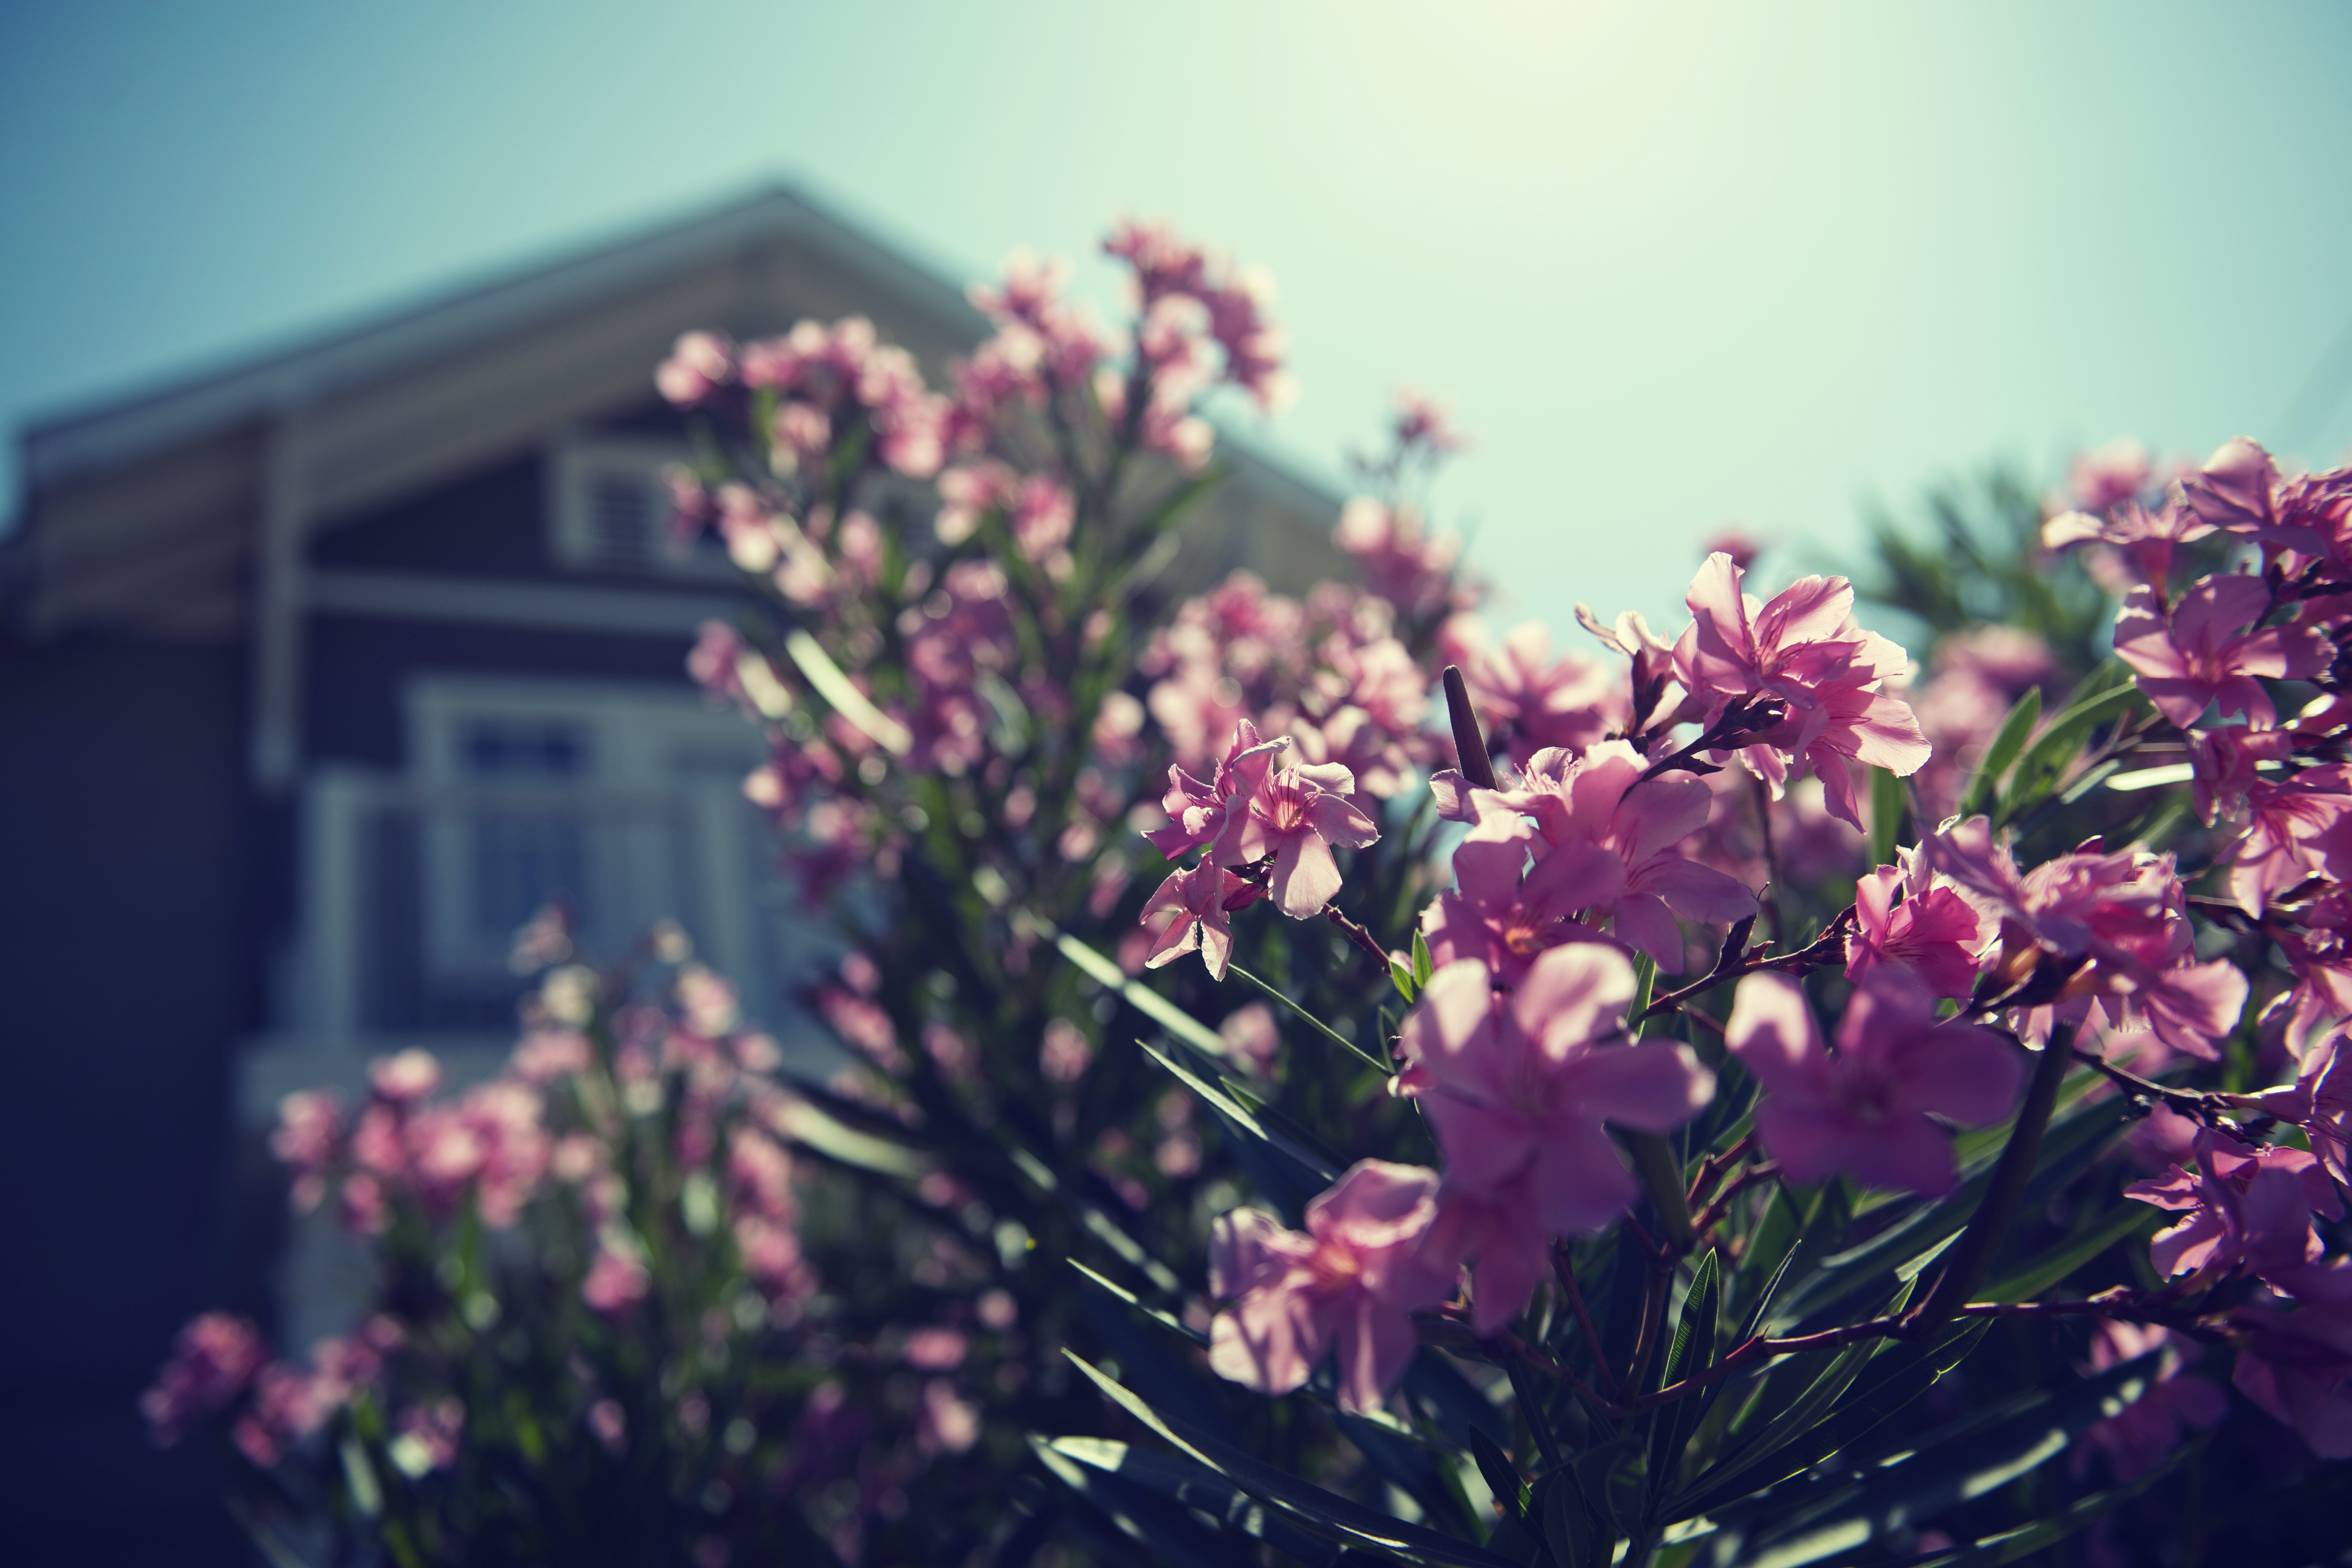 A bush with pink flowers in the front yard.